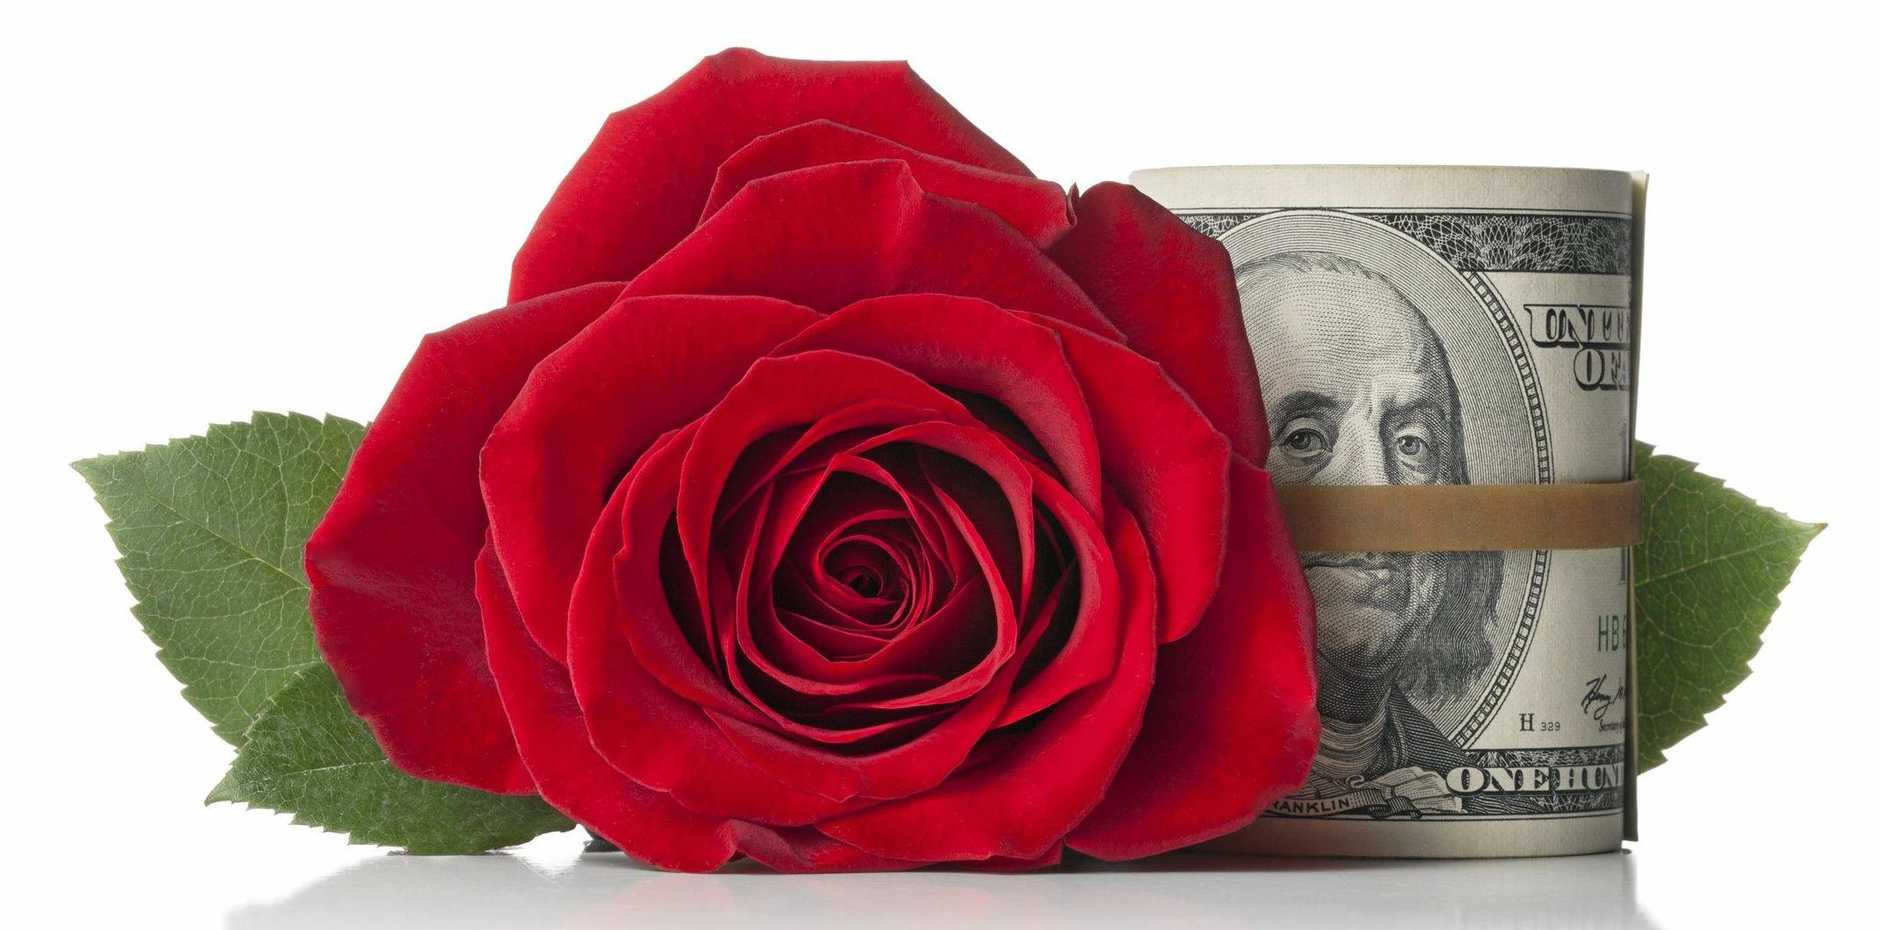 RELATIONSHIP ADVICE: Find out the three ways to make love and money work.